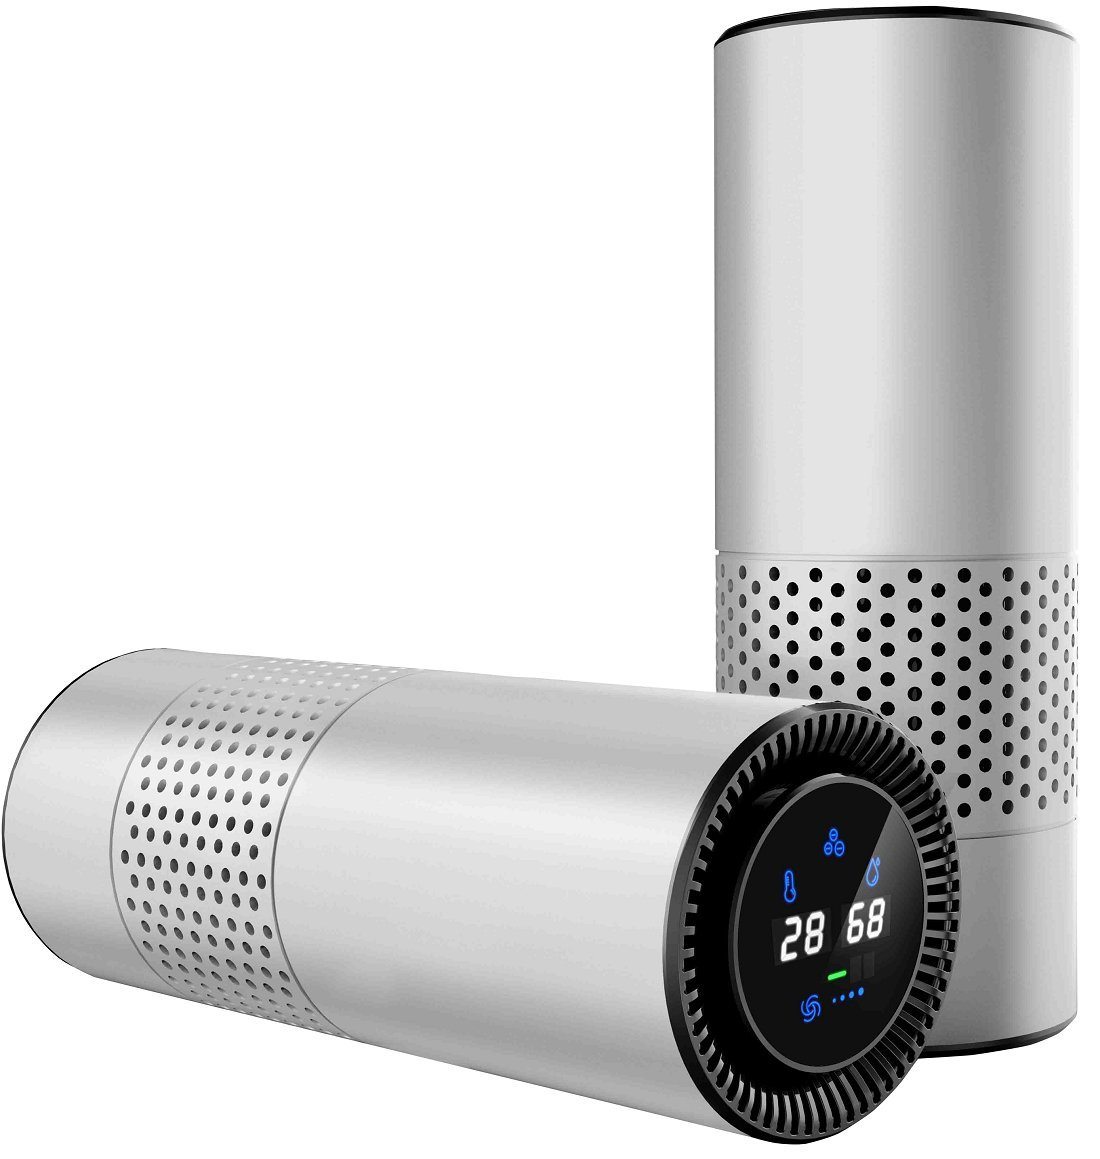 Mododo HEPA Filter Air Purifier for Allergy Sufferers With Gesture Sensing Control,Perfect for Car Desktop Office Home(Silver)